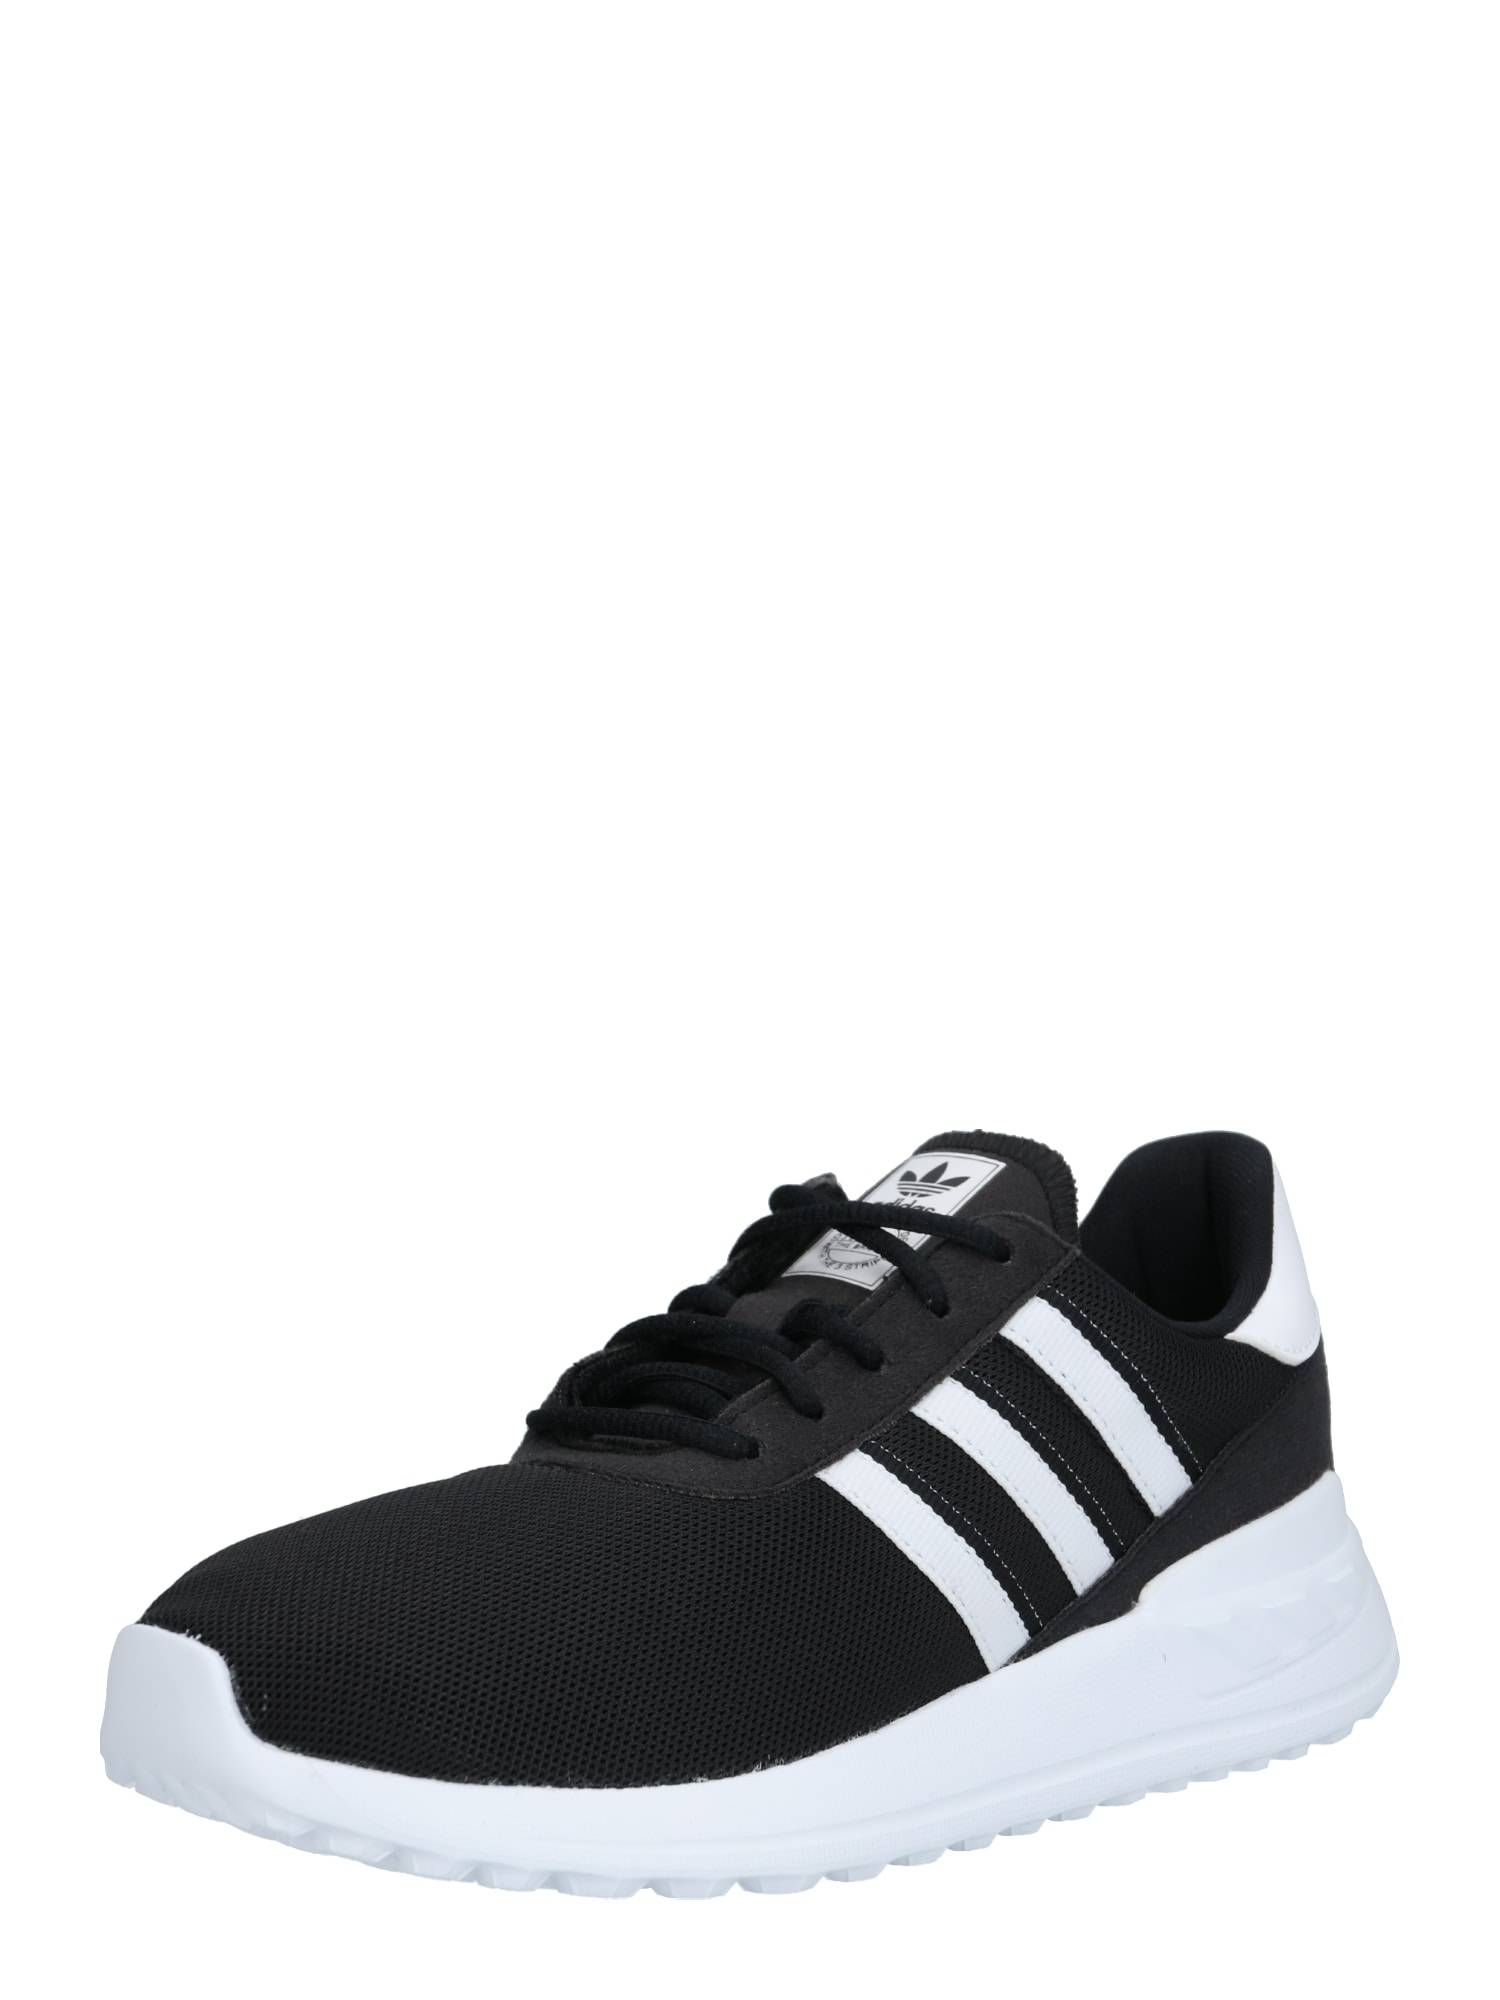 ADIDAS ORIGINALS Baskets 'La Trainer Lite'  - Noir - Taille: 31.5 - boy